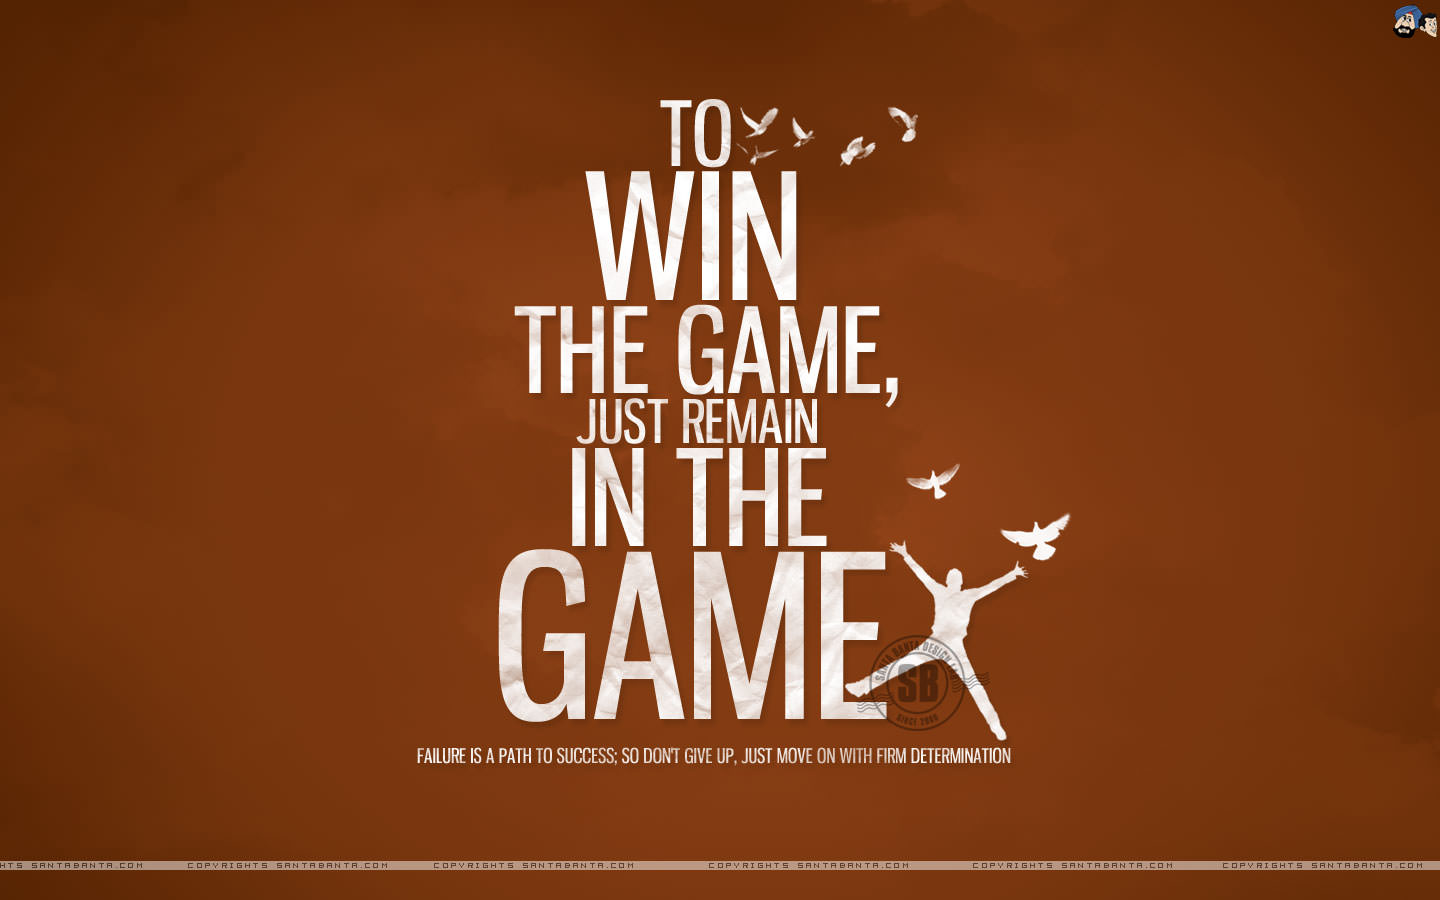 Great Wallpaper Mobile Inspirational - To-win-the-game1  Gallery_789146.jpg